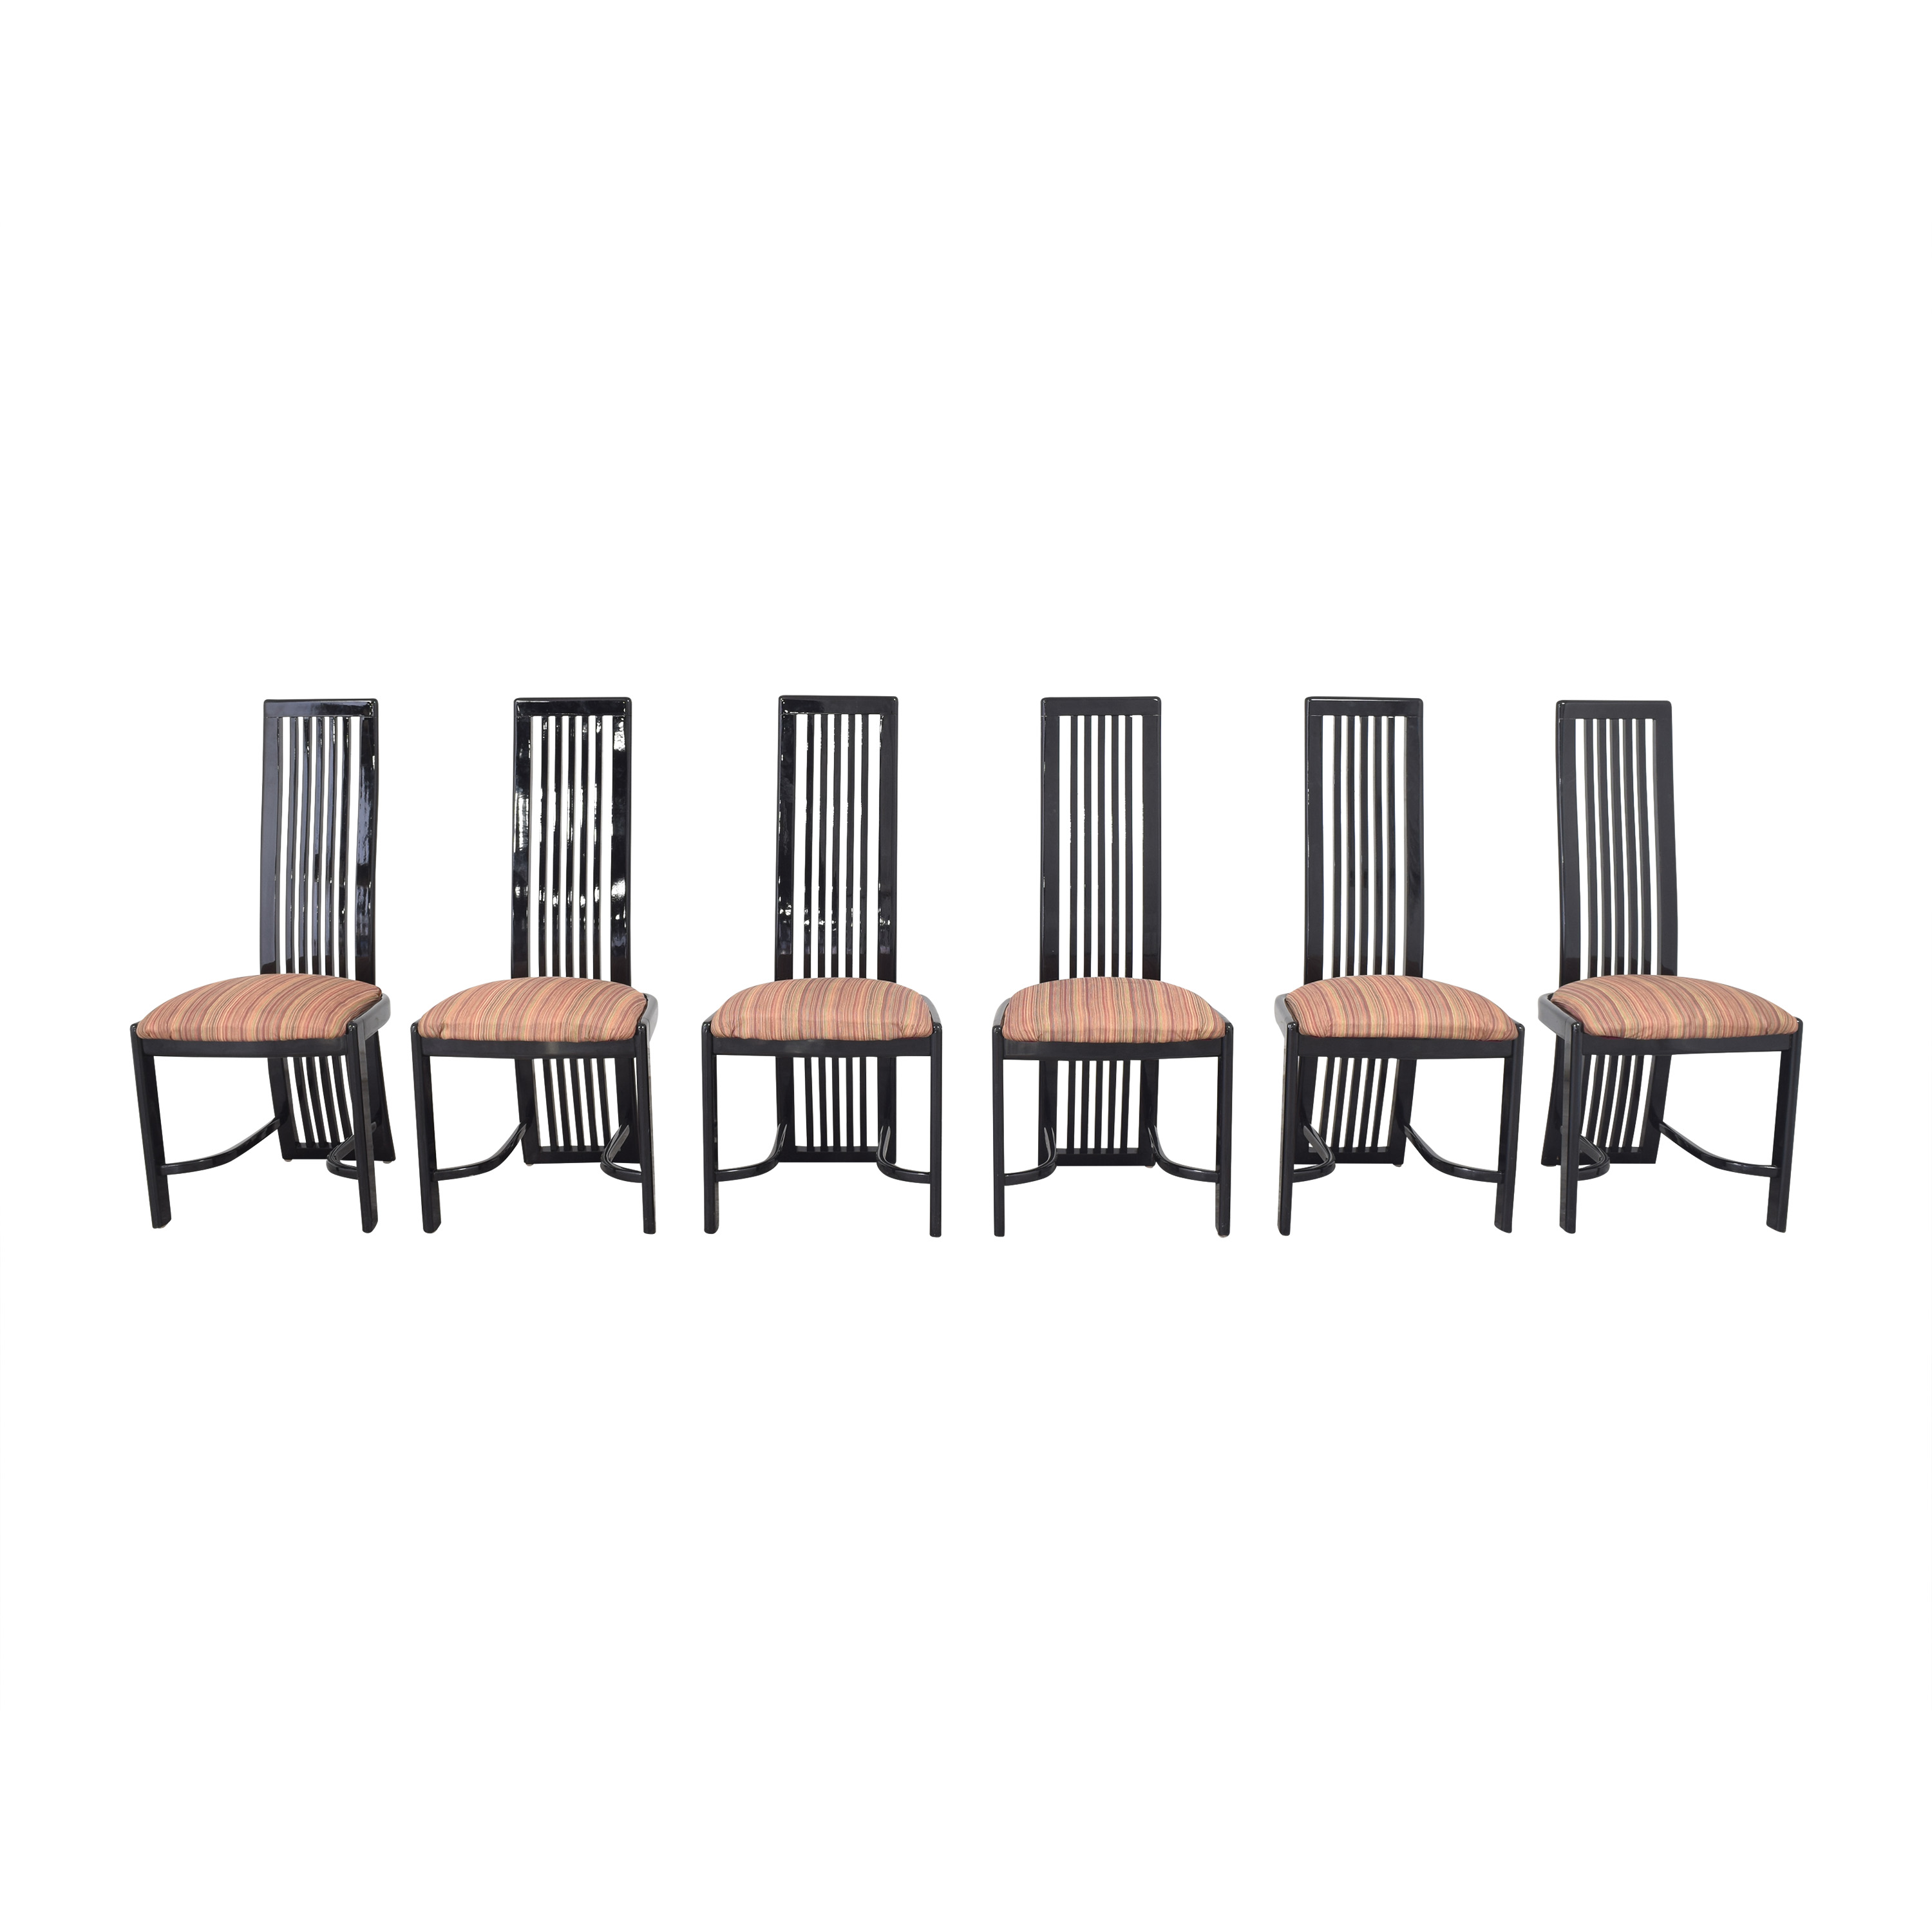 Italian-Style High Back Dining Chairs sale